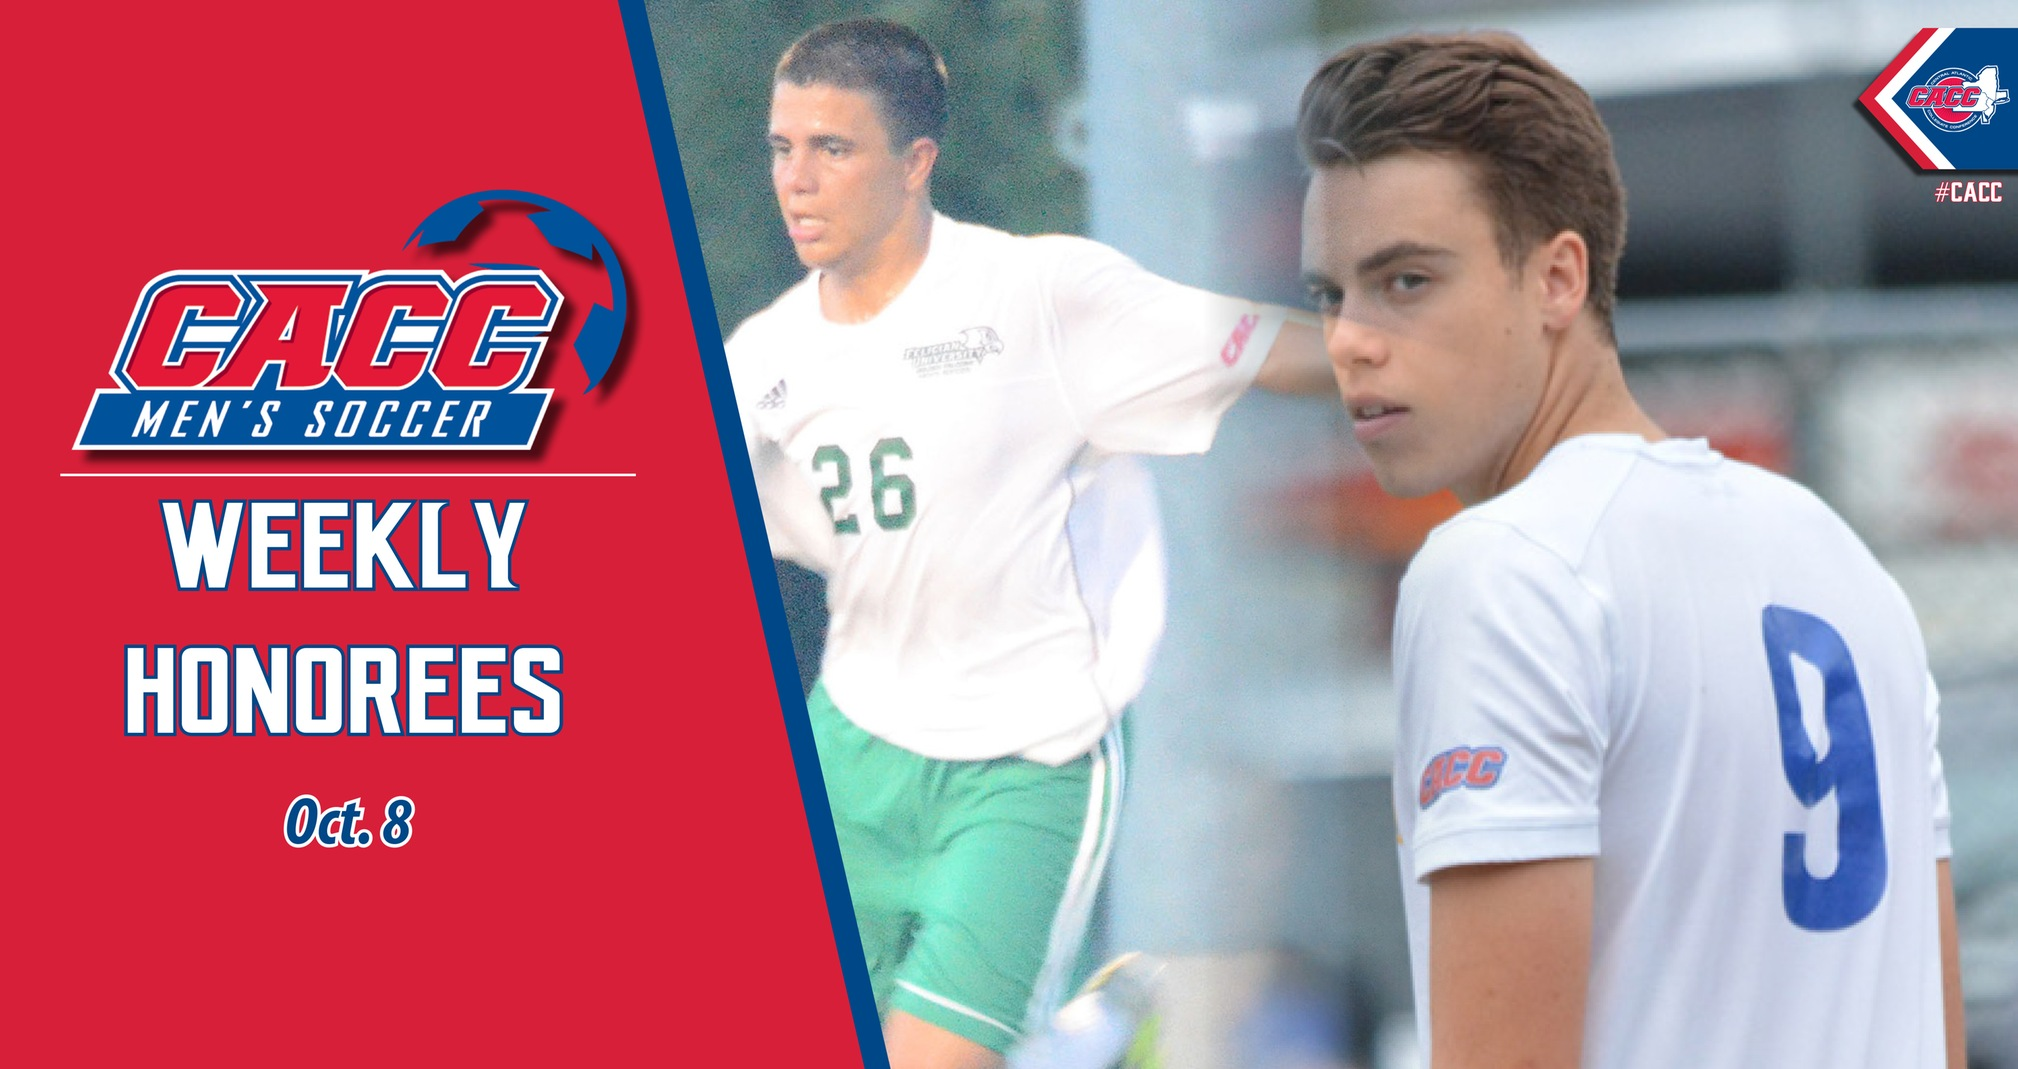 CACC Men's Soccer Weekly Honorees (Oct. 8)